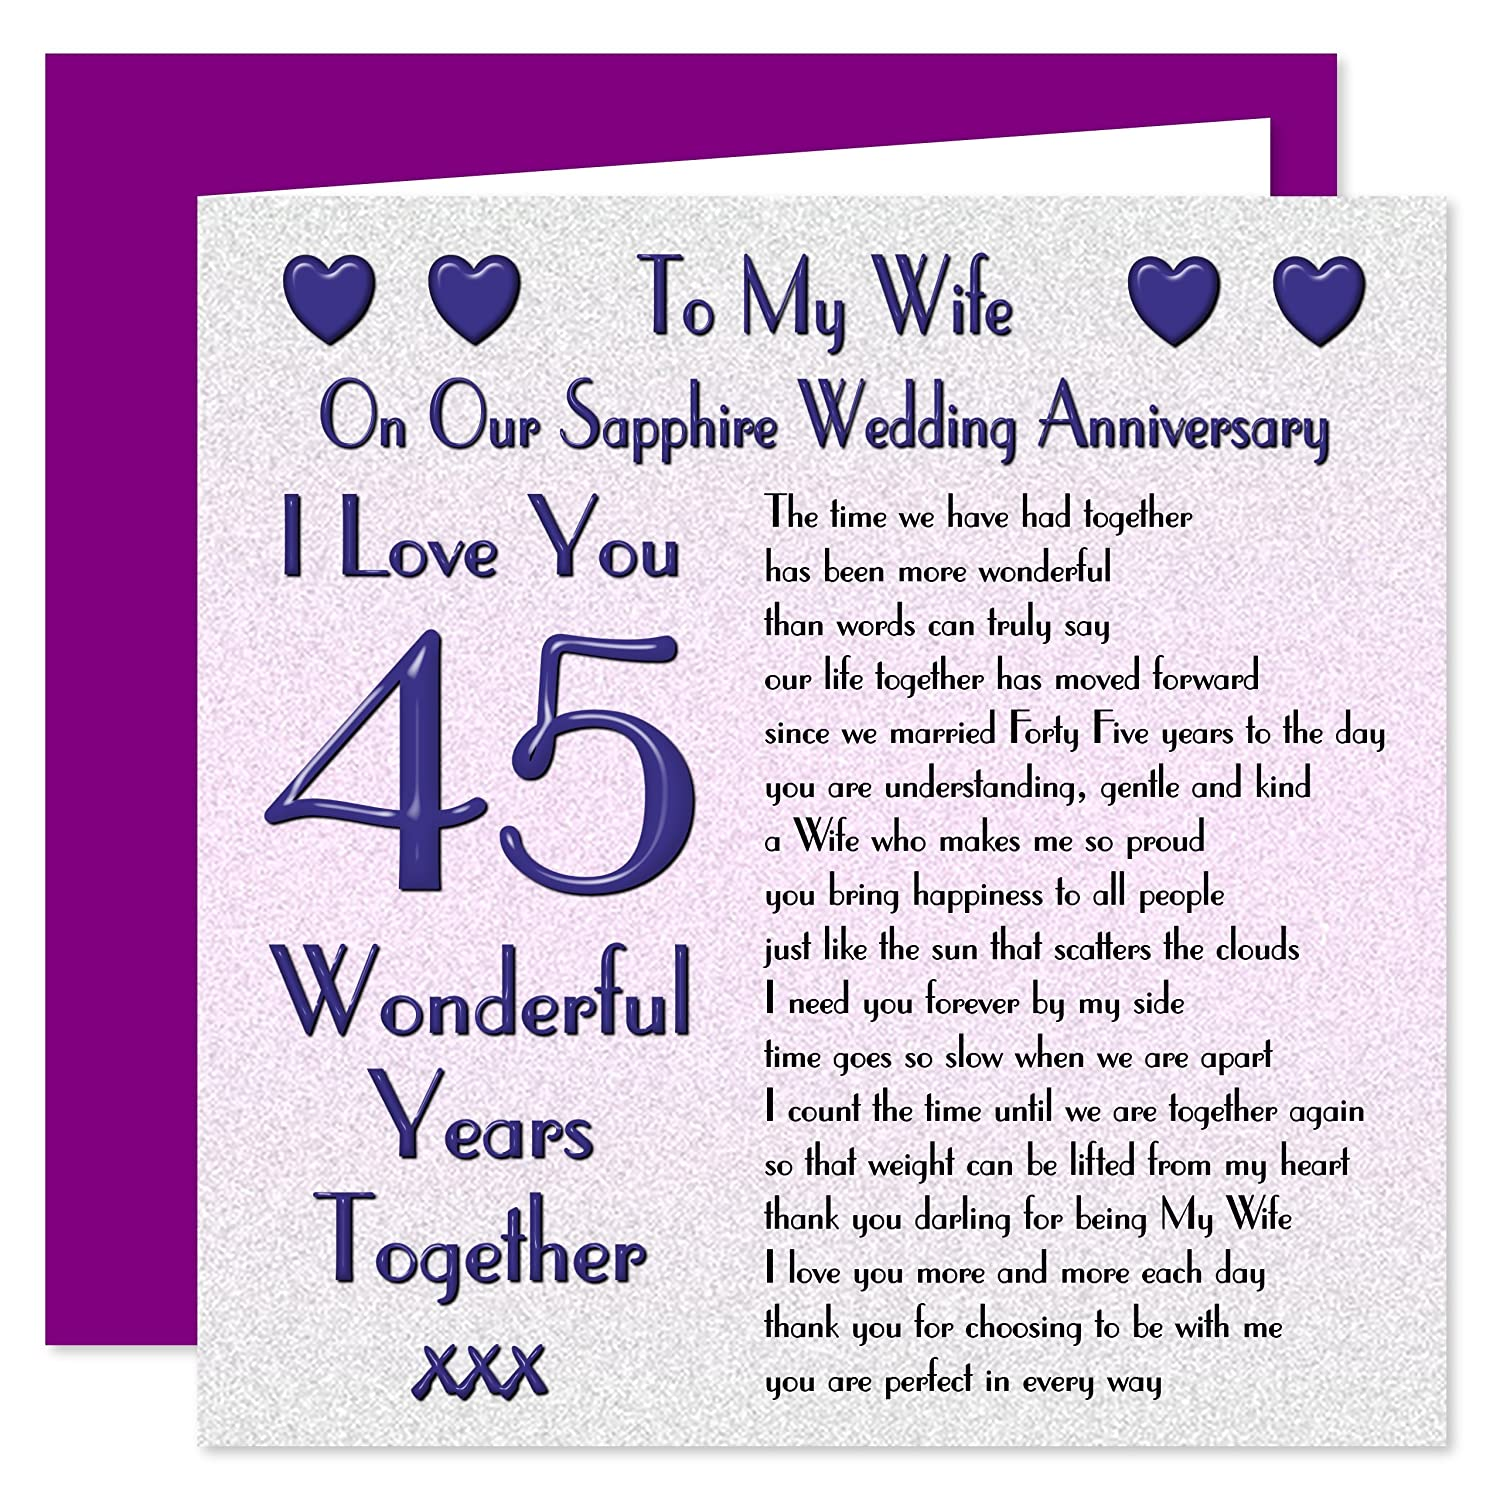 On Our Sapphire Anniversary My Wife 45th Wedding Anniversary Card Sentimental Verse I Love You 45 Years